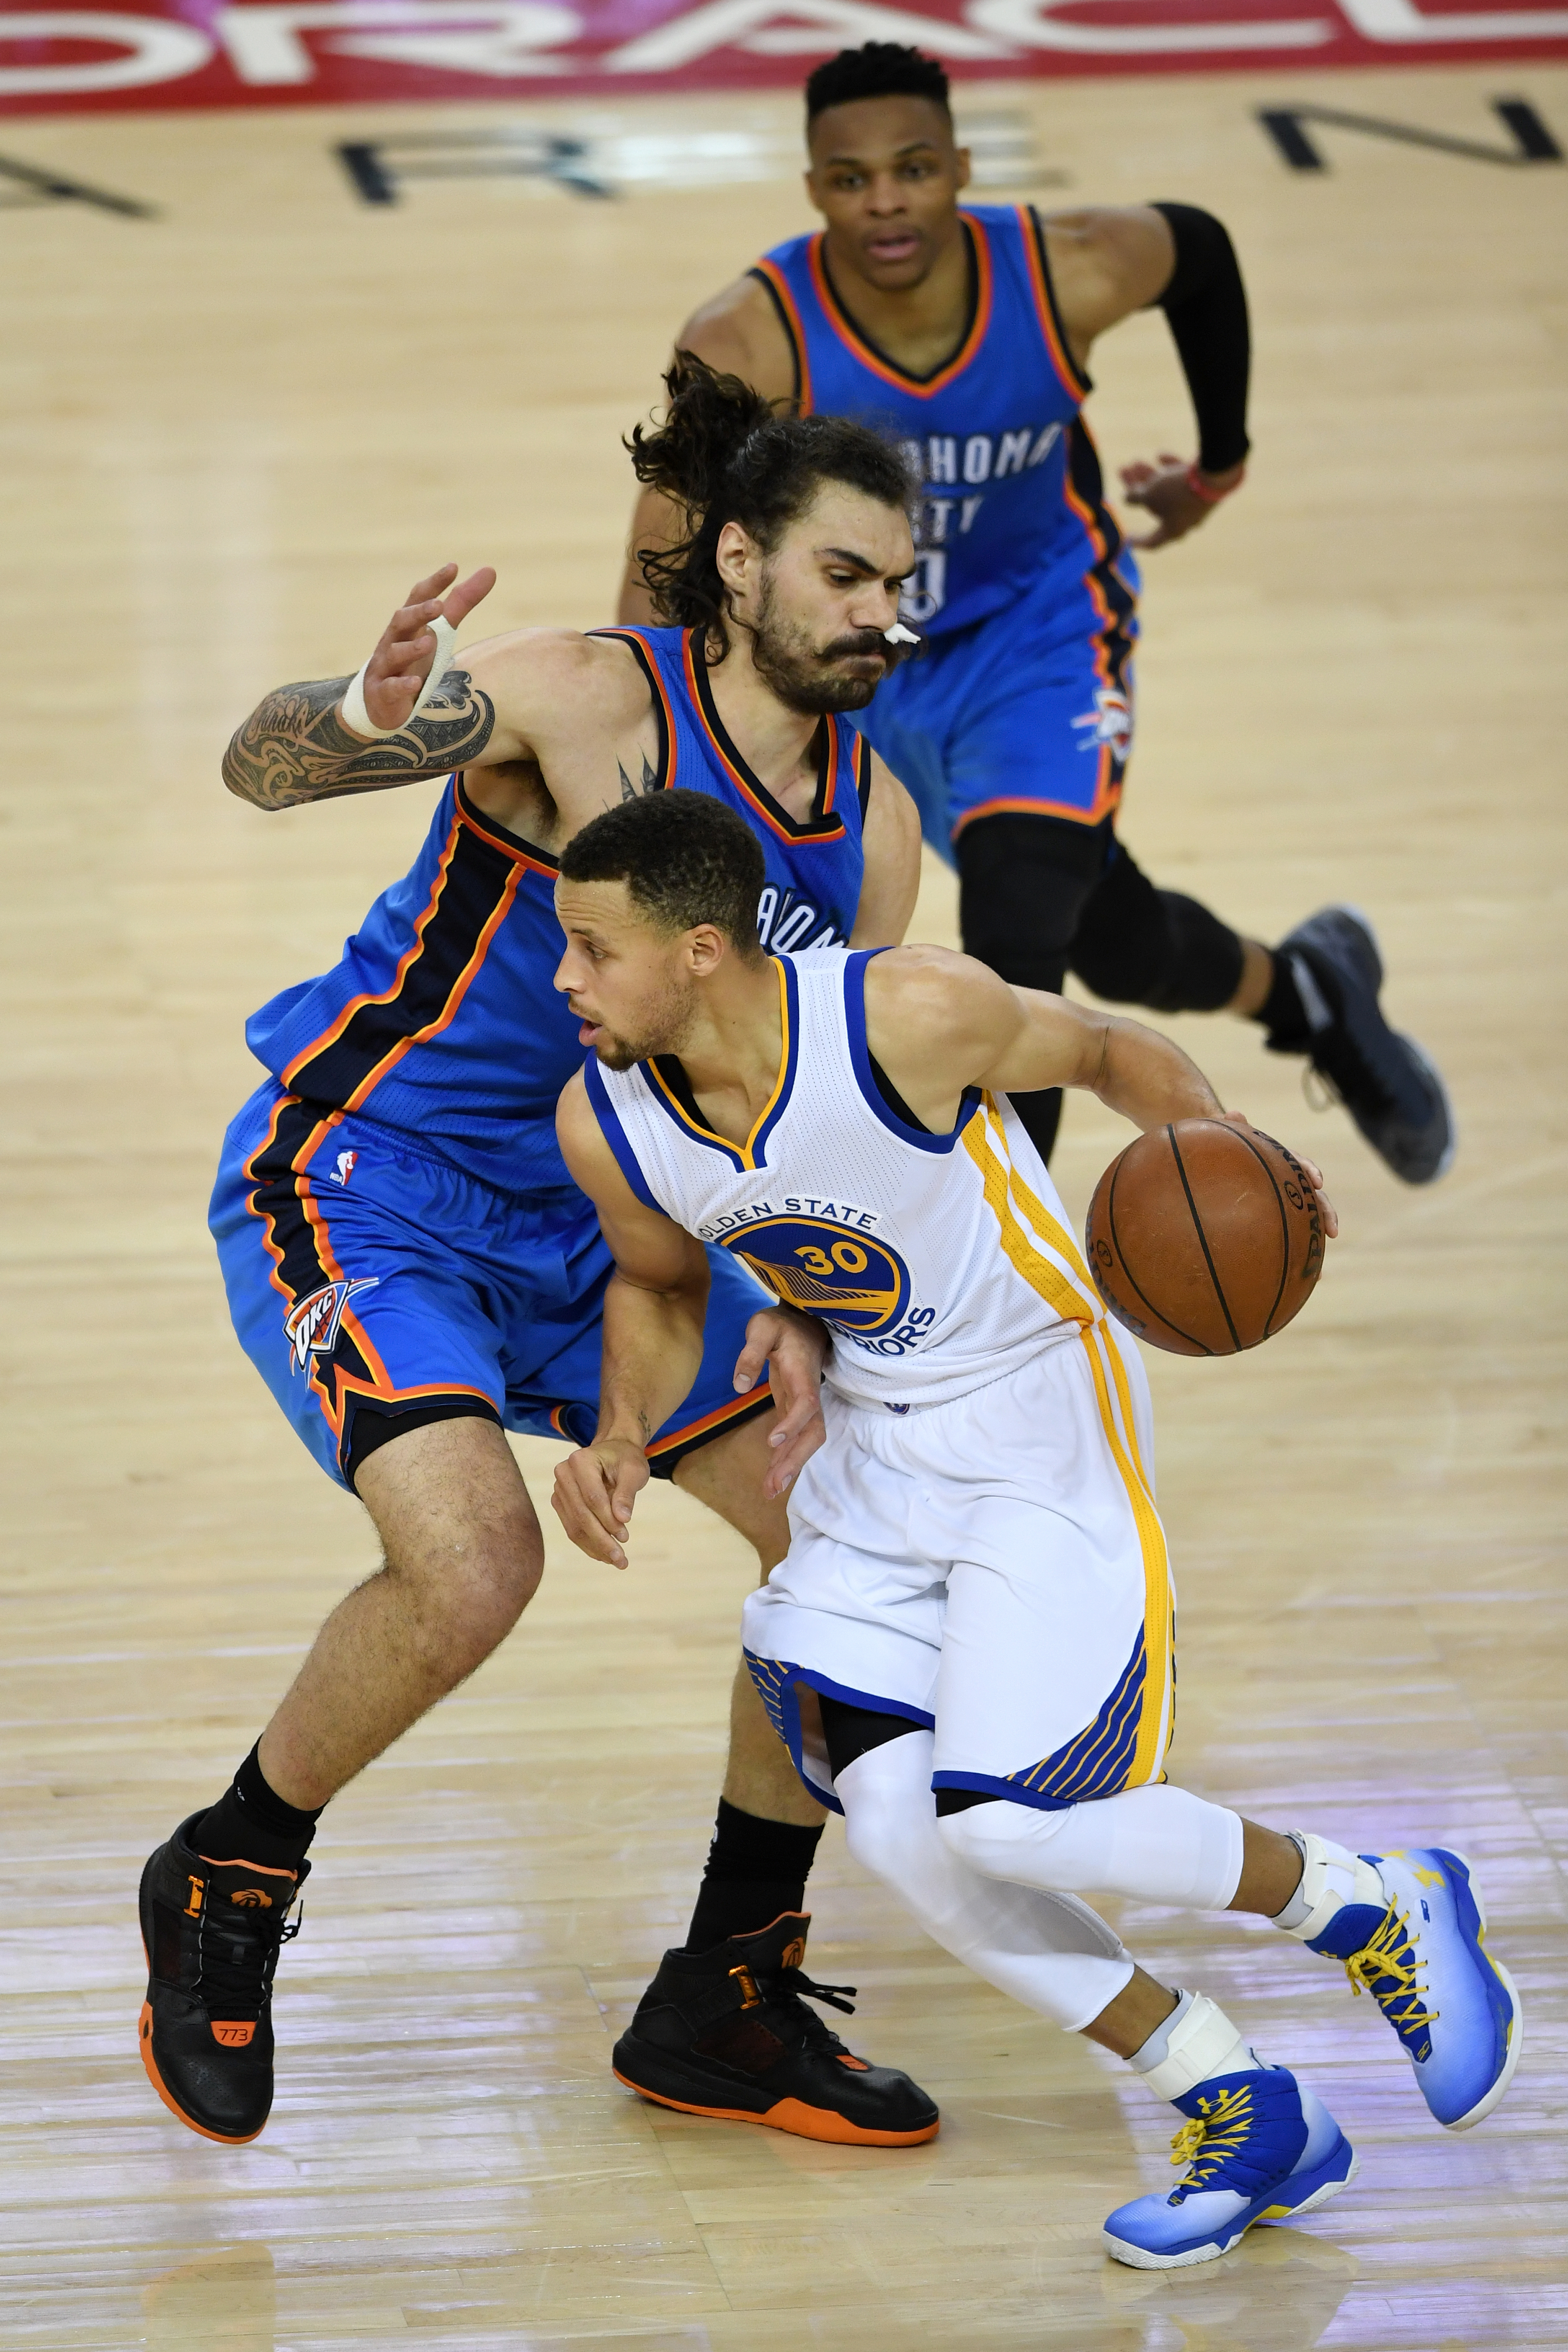 OAKLAND, CA - MAY 16:  Stephen Curry #30 of the Golden State Warriors drives with the ball against Steven Adams #12 of the Oklahoma City Thunder during game one of the NBA Western Conference Final at ORACLE Arena on May 16, 2016 in Oakland, California. (P